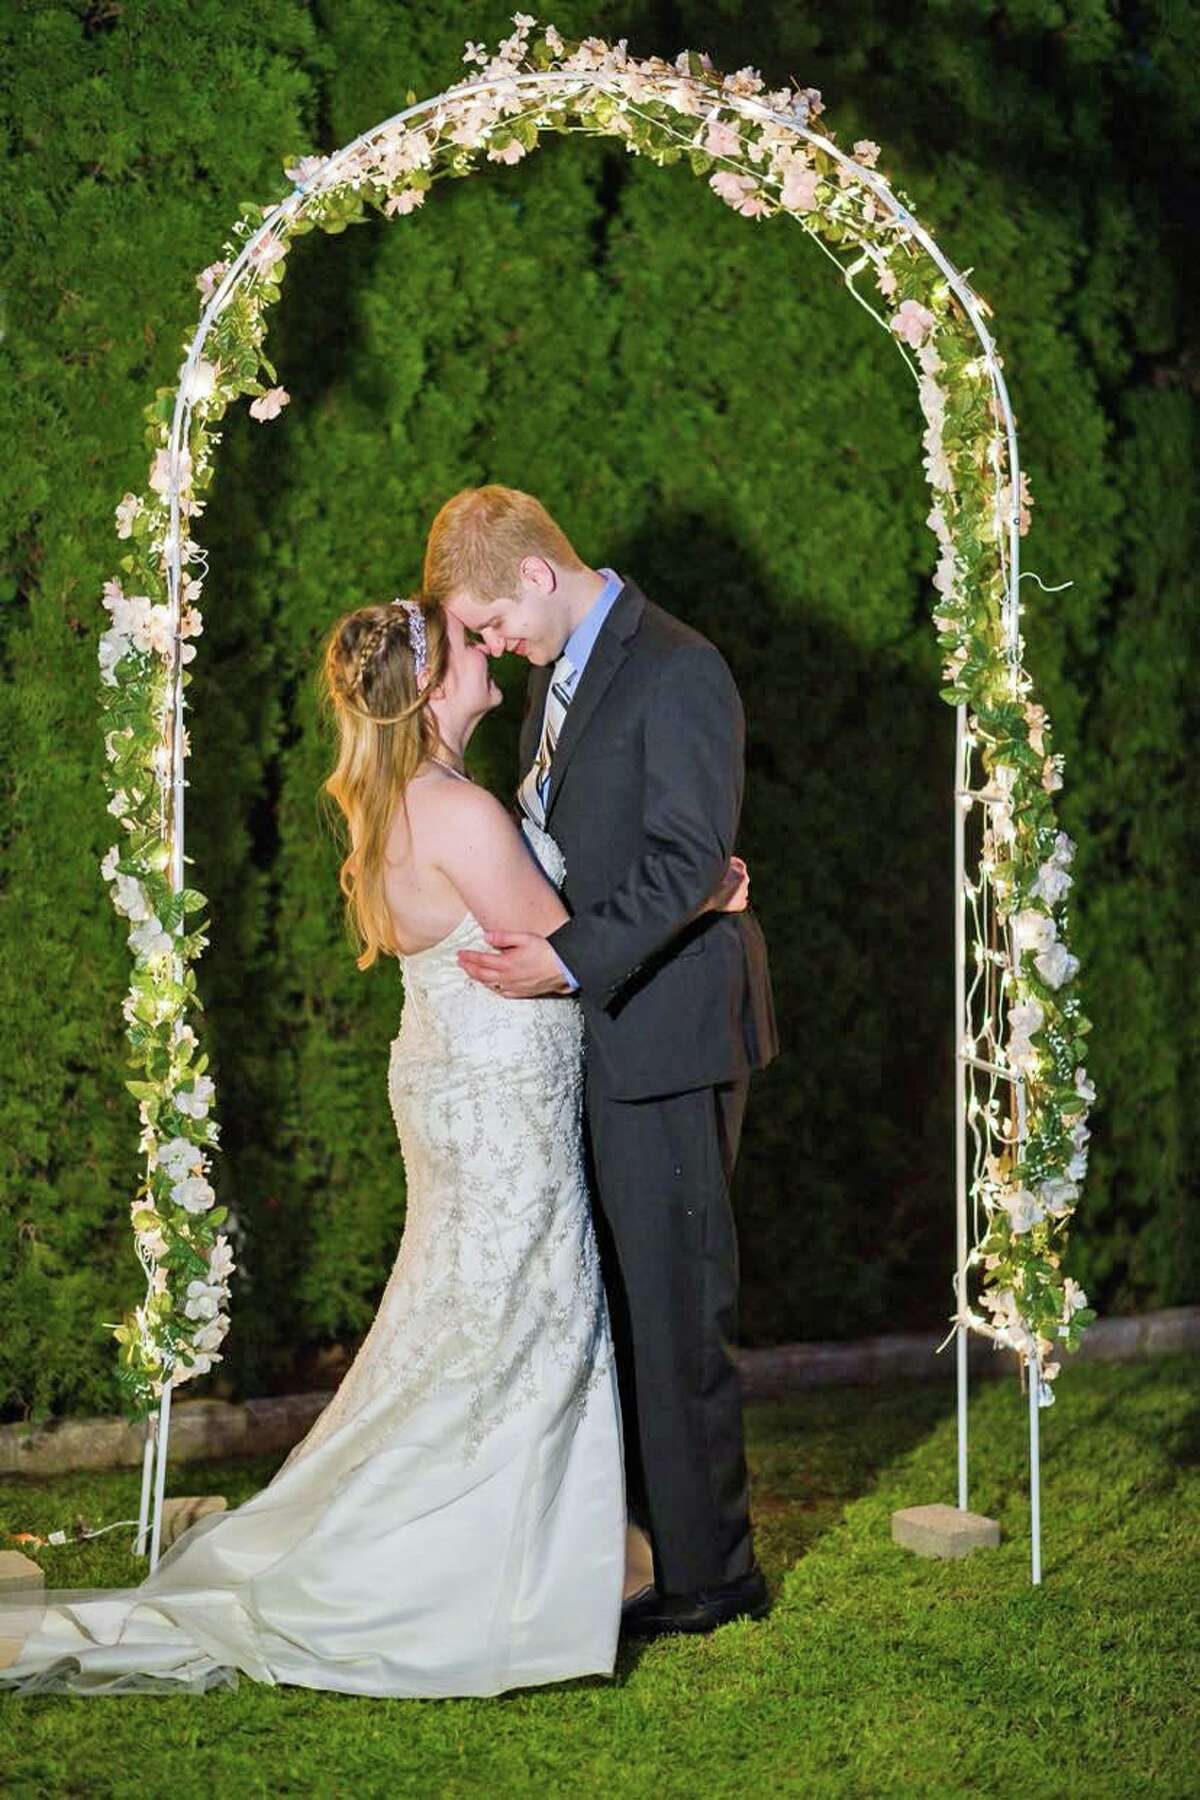 Christina and Jesse Rathbun pose for a photo at their small wedding of 30 people on Sept. 5, 2020. To accommodate their original 120-person list, the couple is hopeful about holding an upcoming vow renewal and reception party on Sept. 4, 2021. The COVID-19 pandemic has put a wrench in many wedding plans.